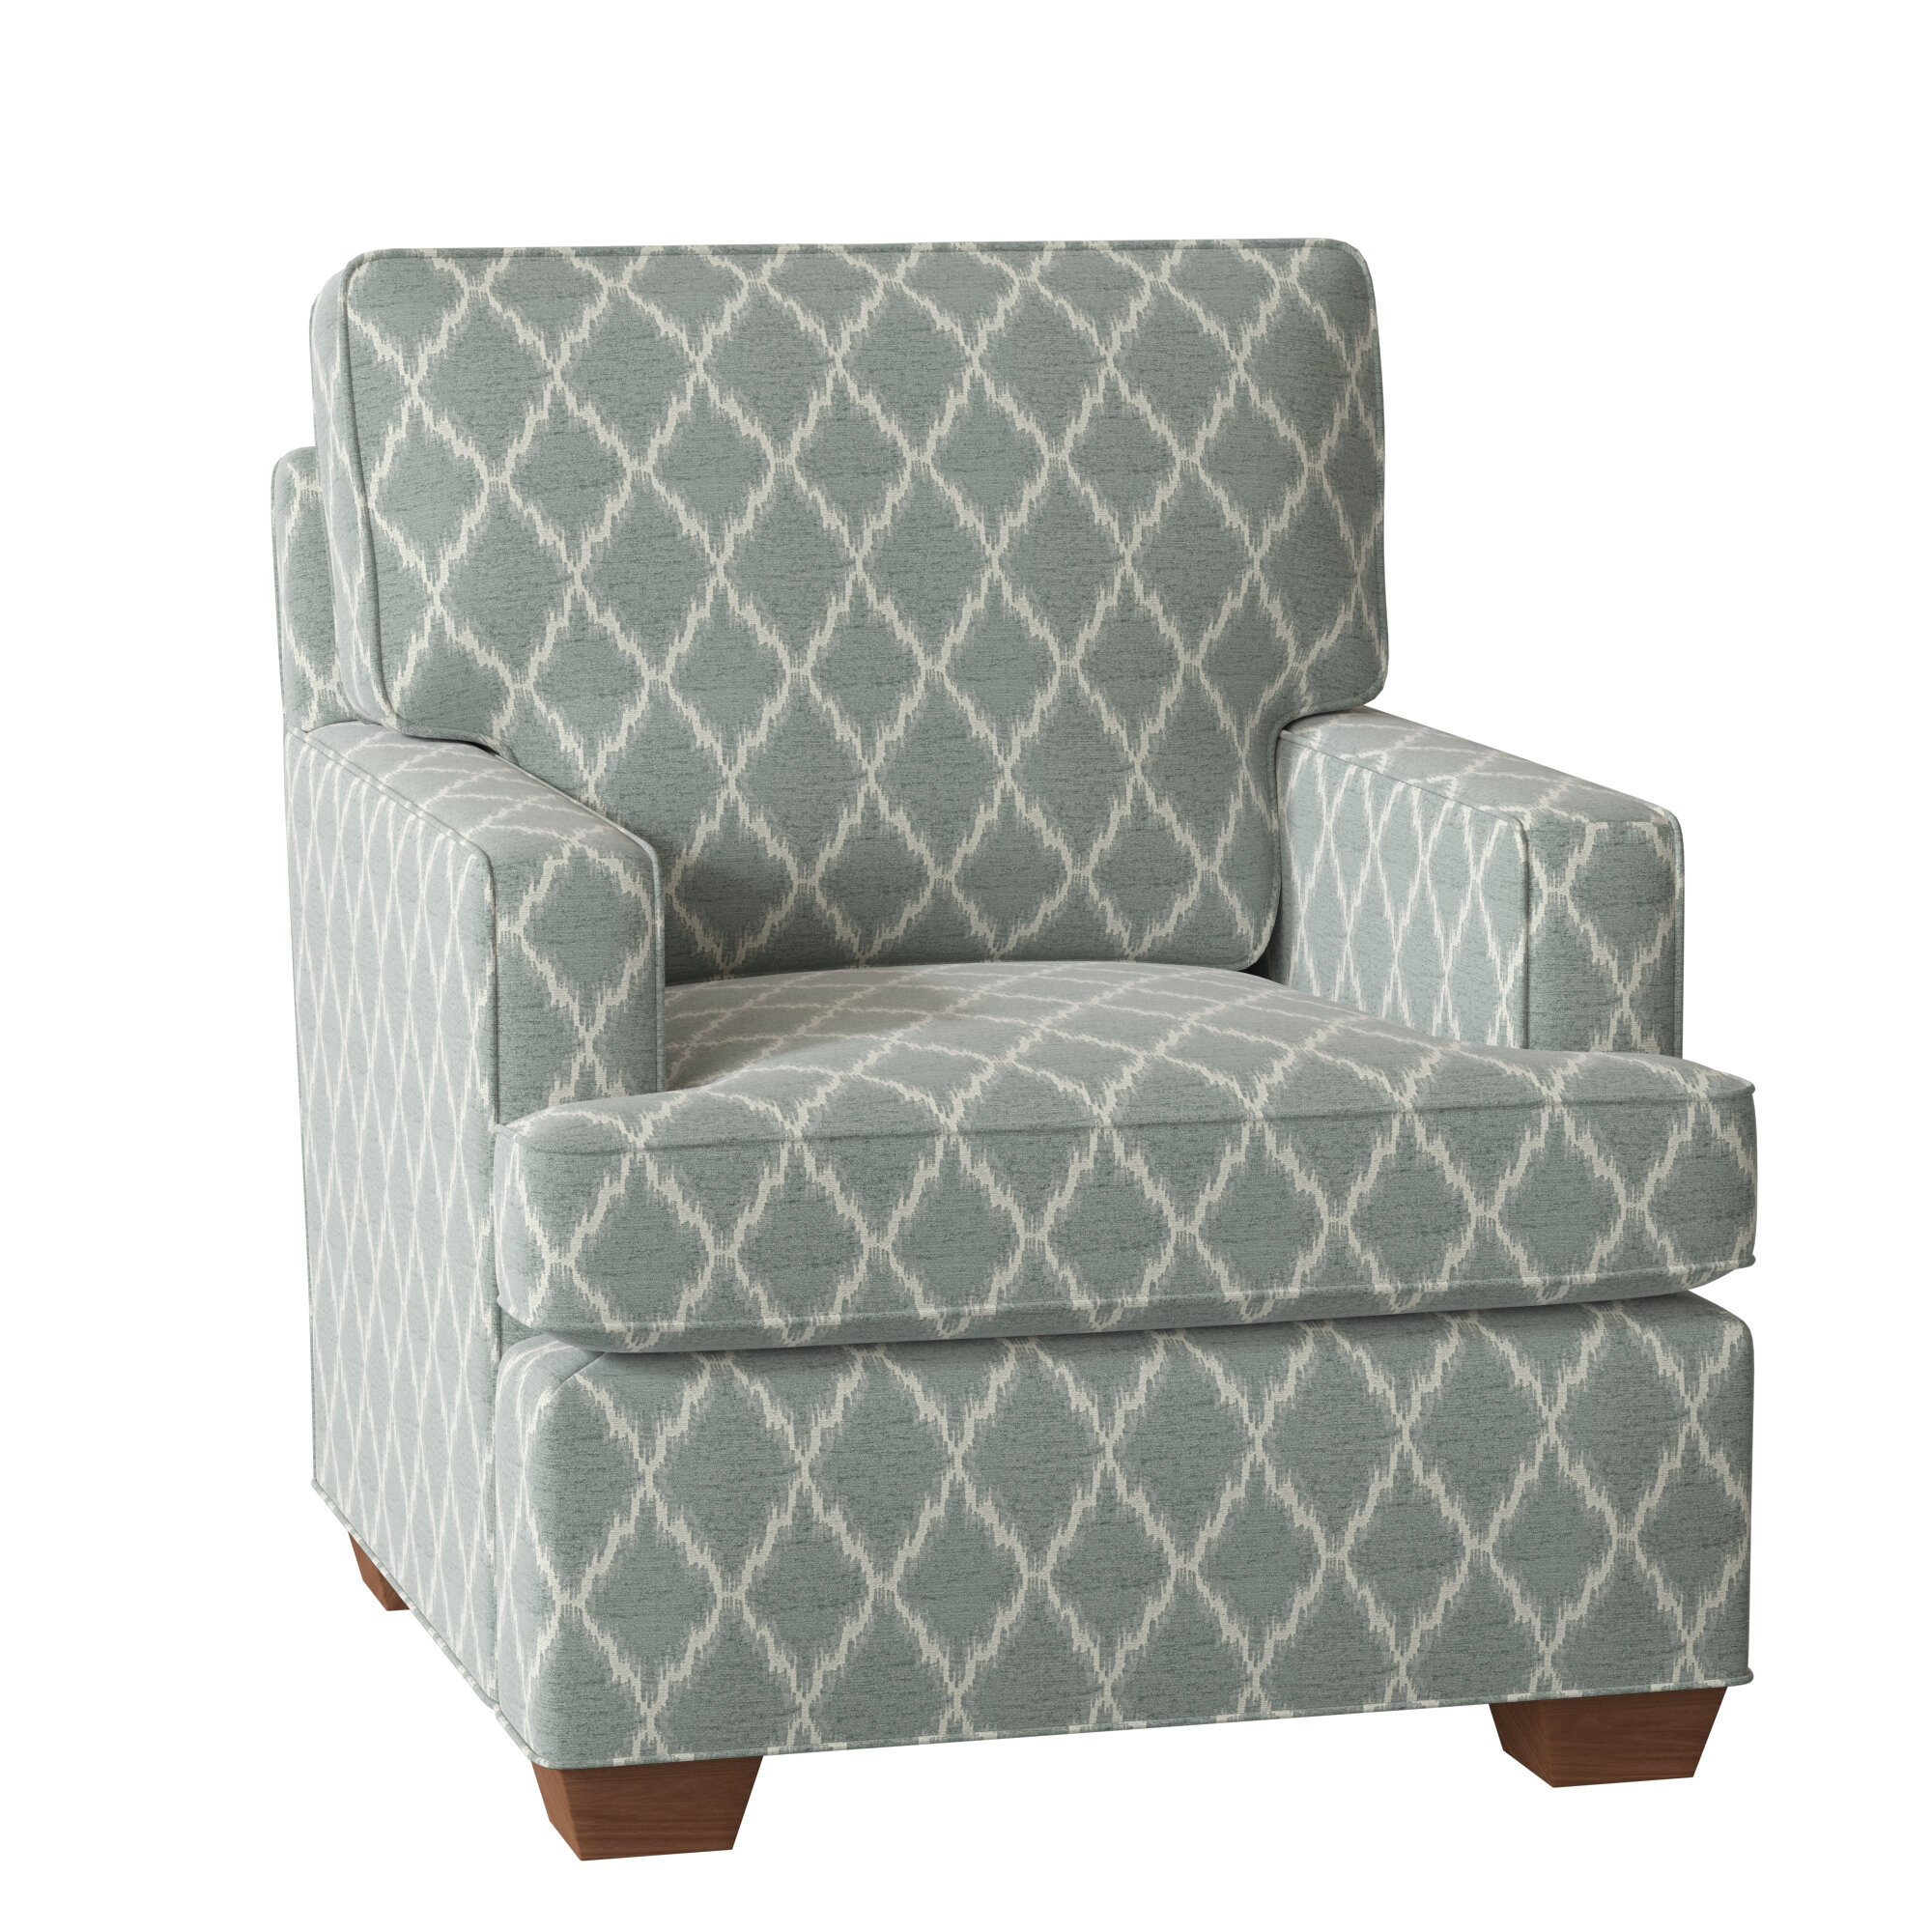 Temple Furniture Leland Armchair